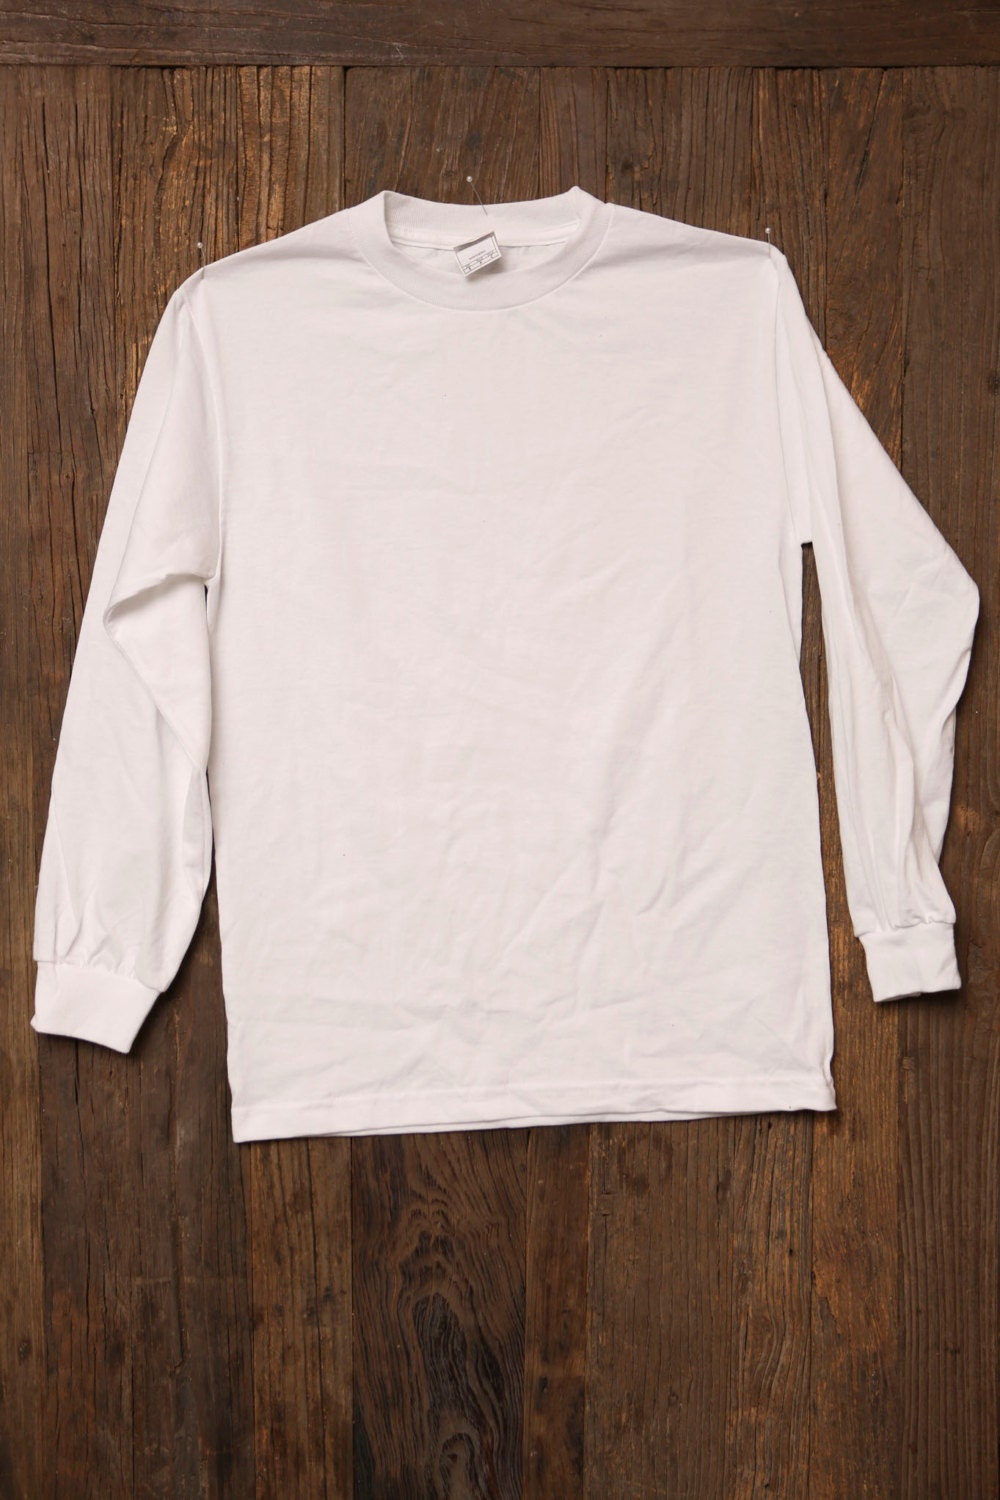 Custom Design Your Own Long Sleeve Shirt By Wayiare On Etsy